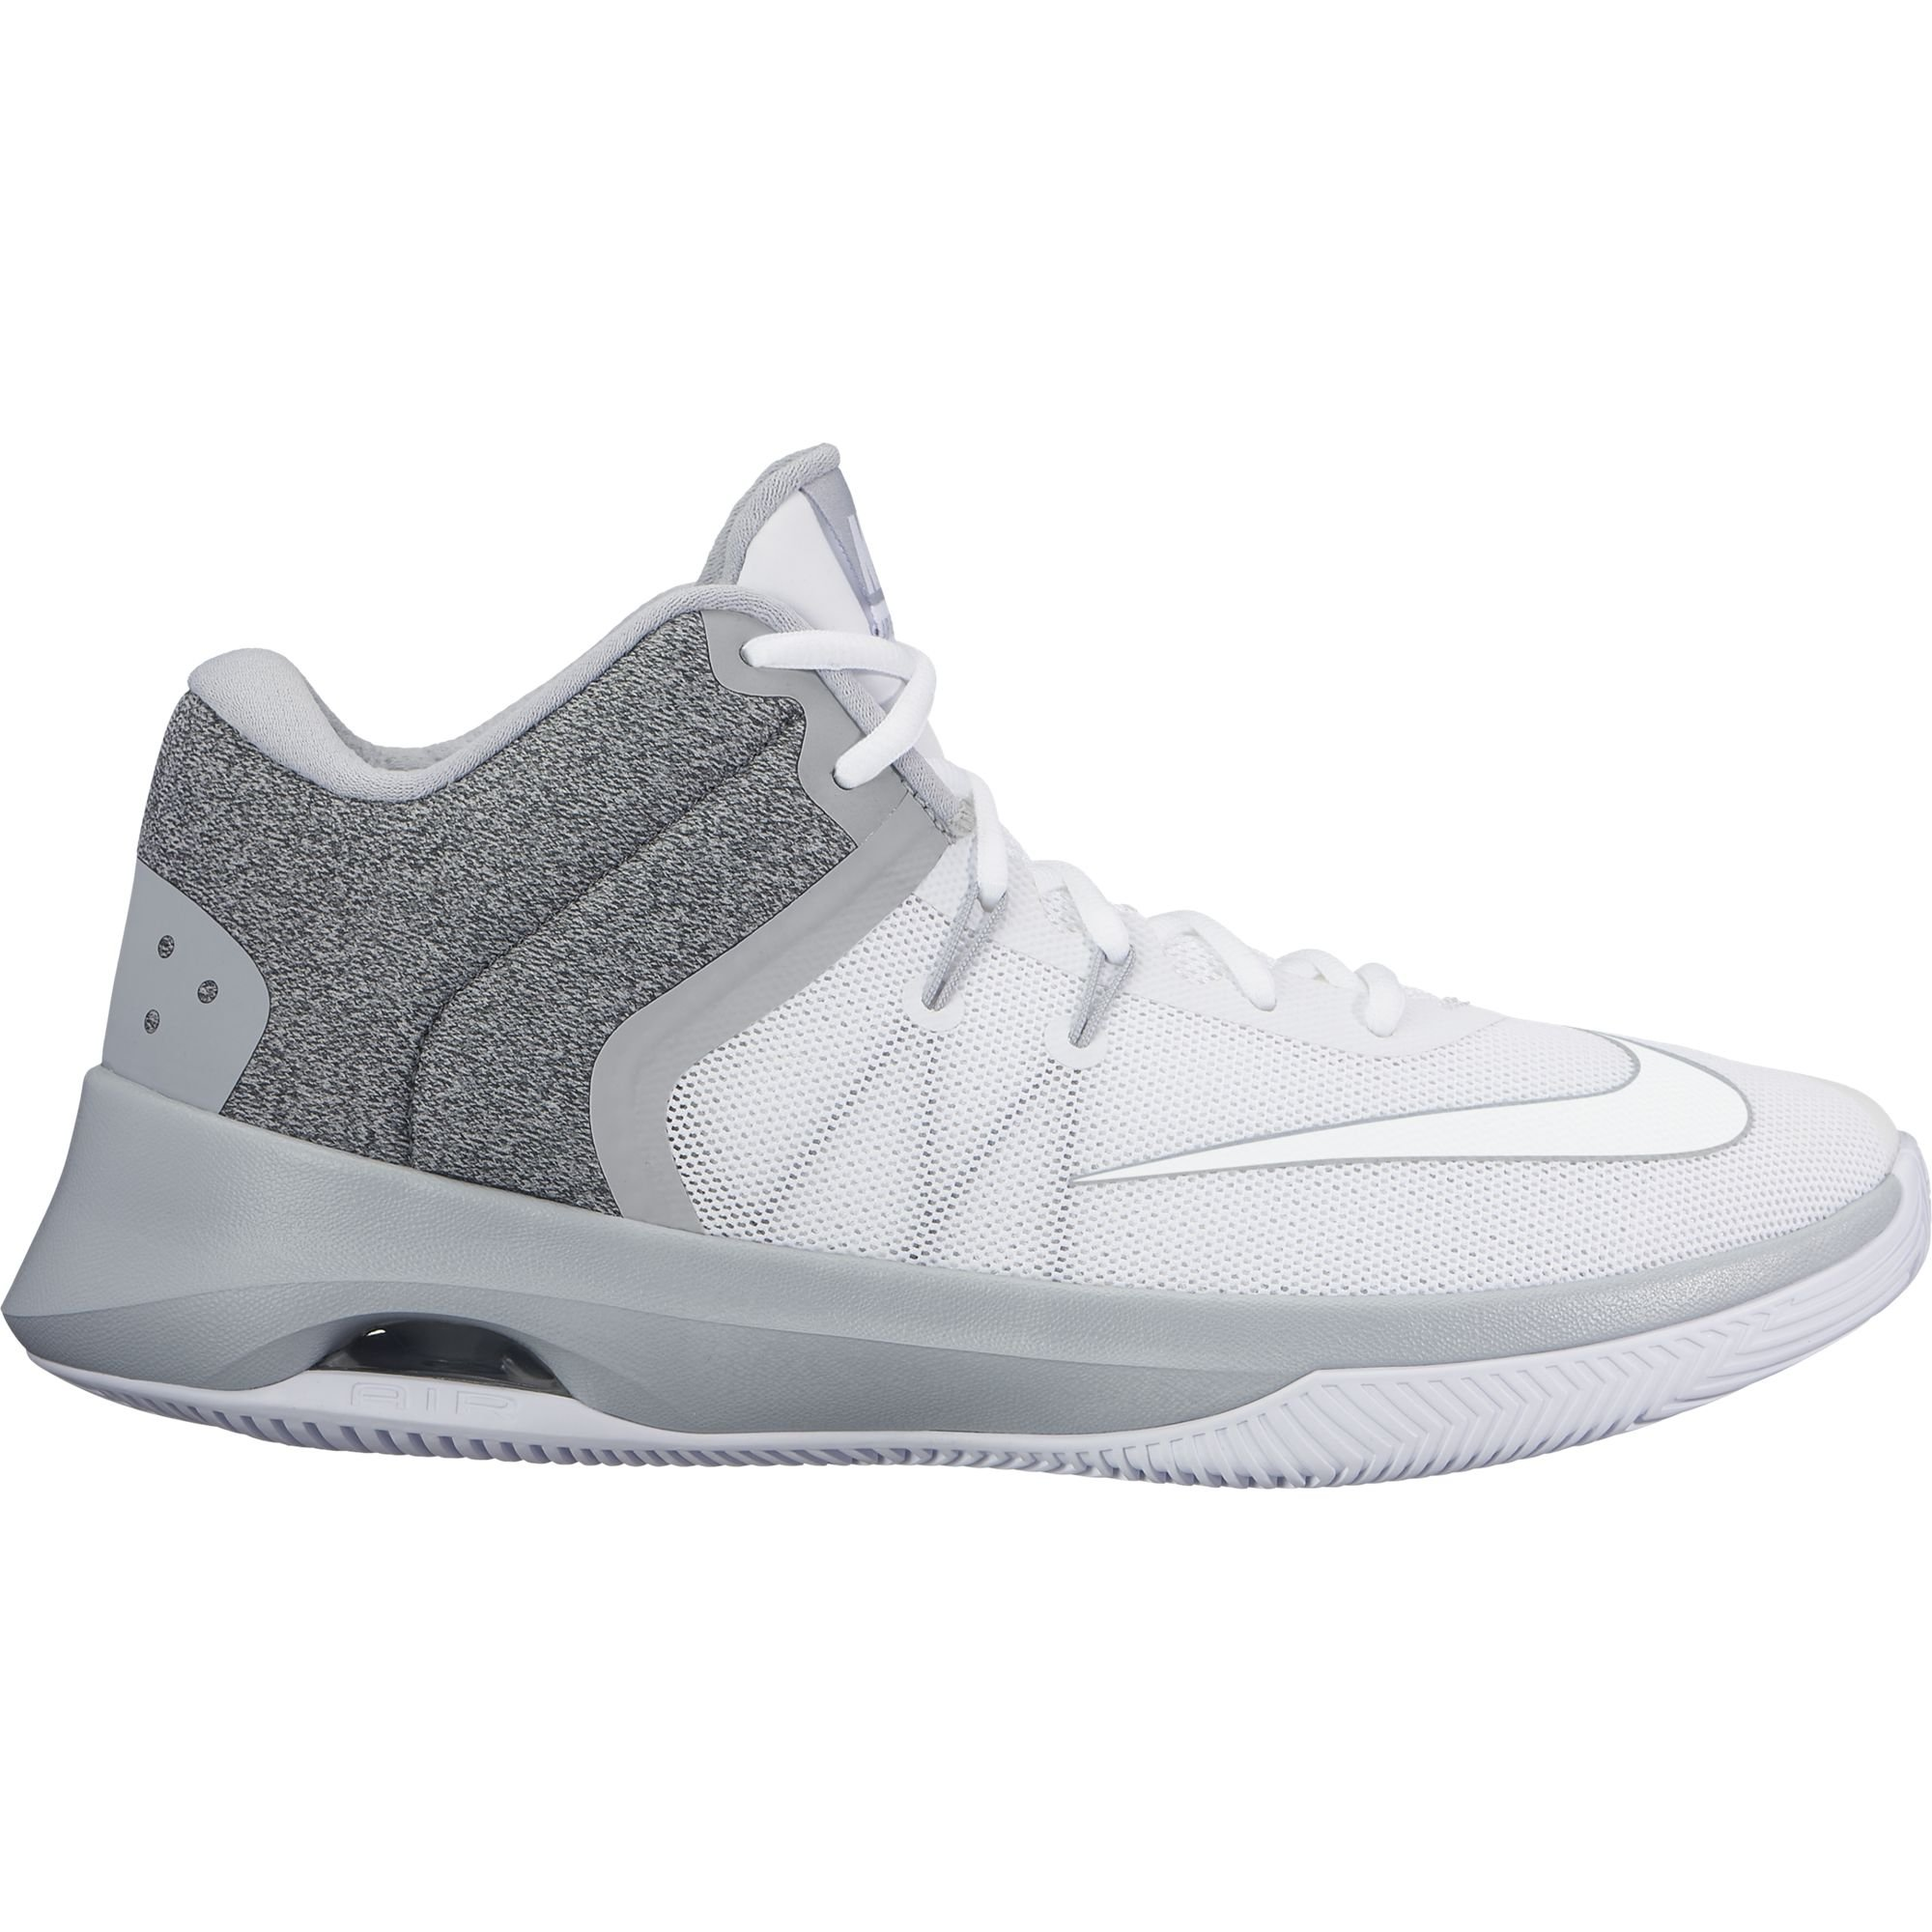 NIKE Men's Air Versitile II Basketball Shoe White/Wolf Grey 9.5